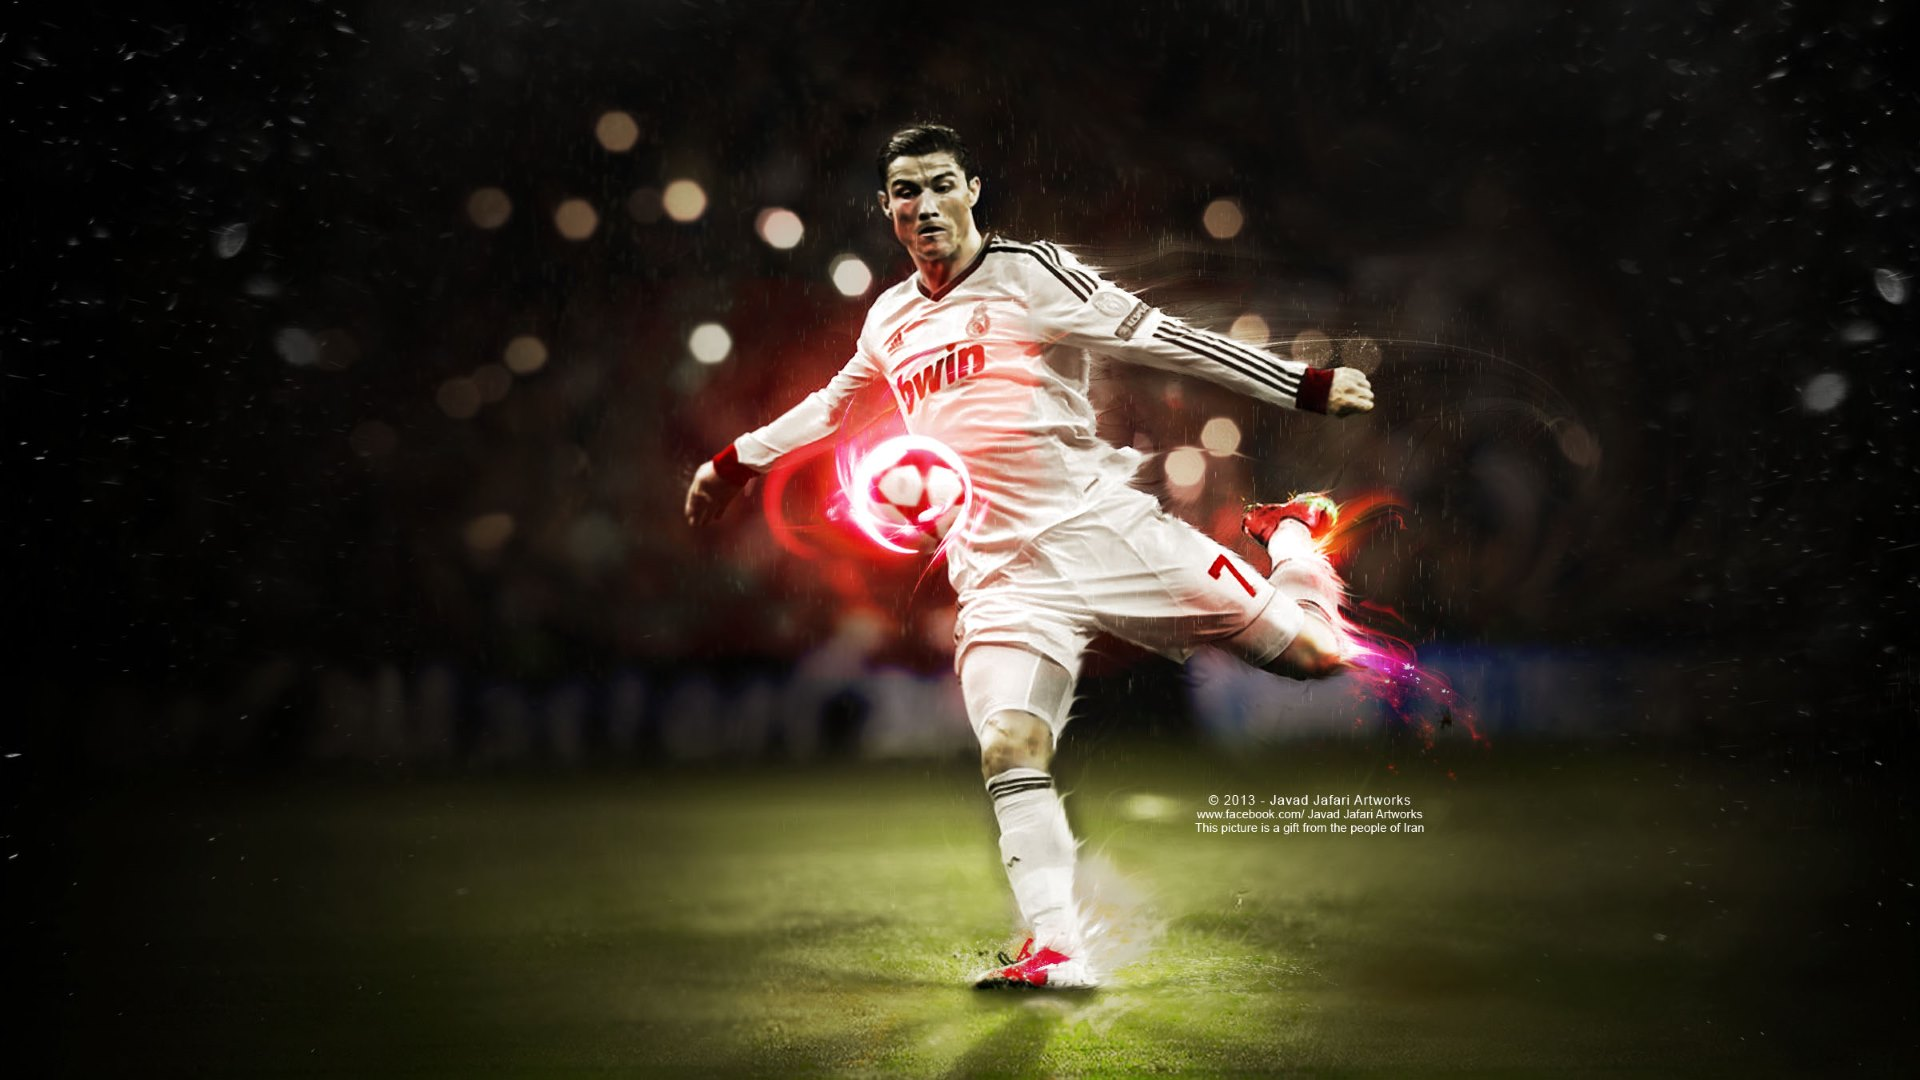 Cristiano Ronaldo Soccer Player Stock Photos and Pictures | Getty ...